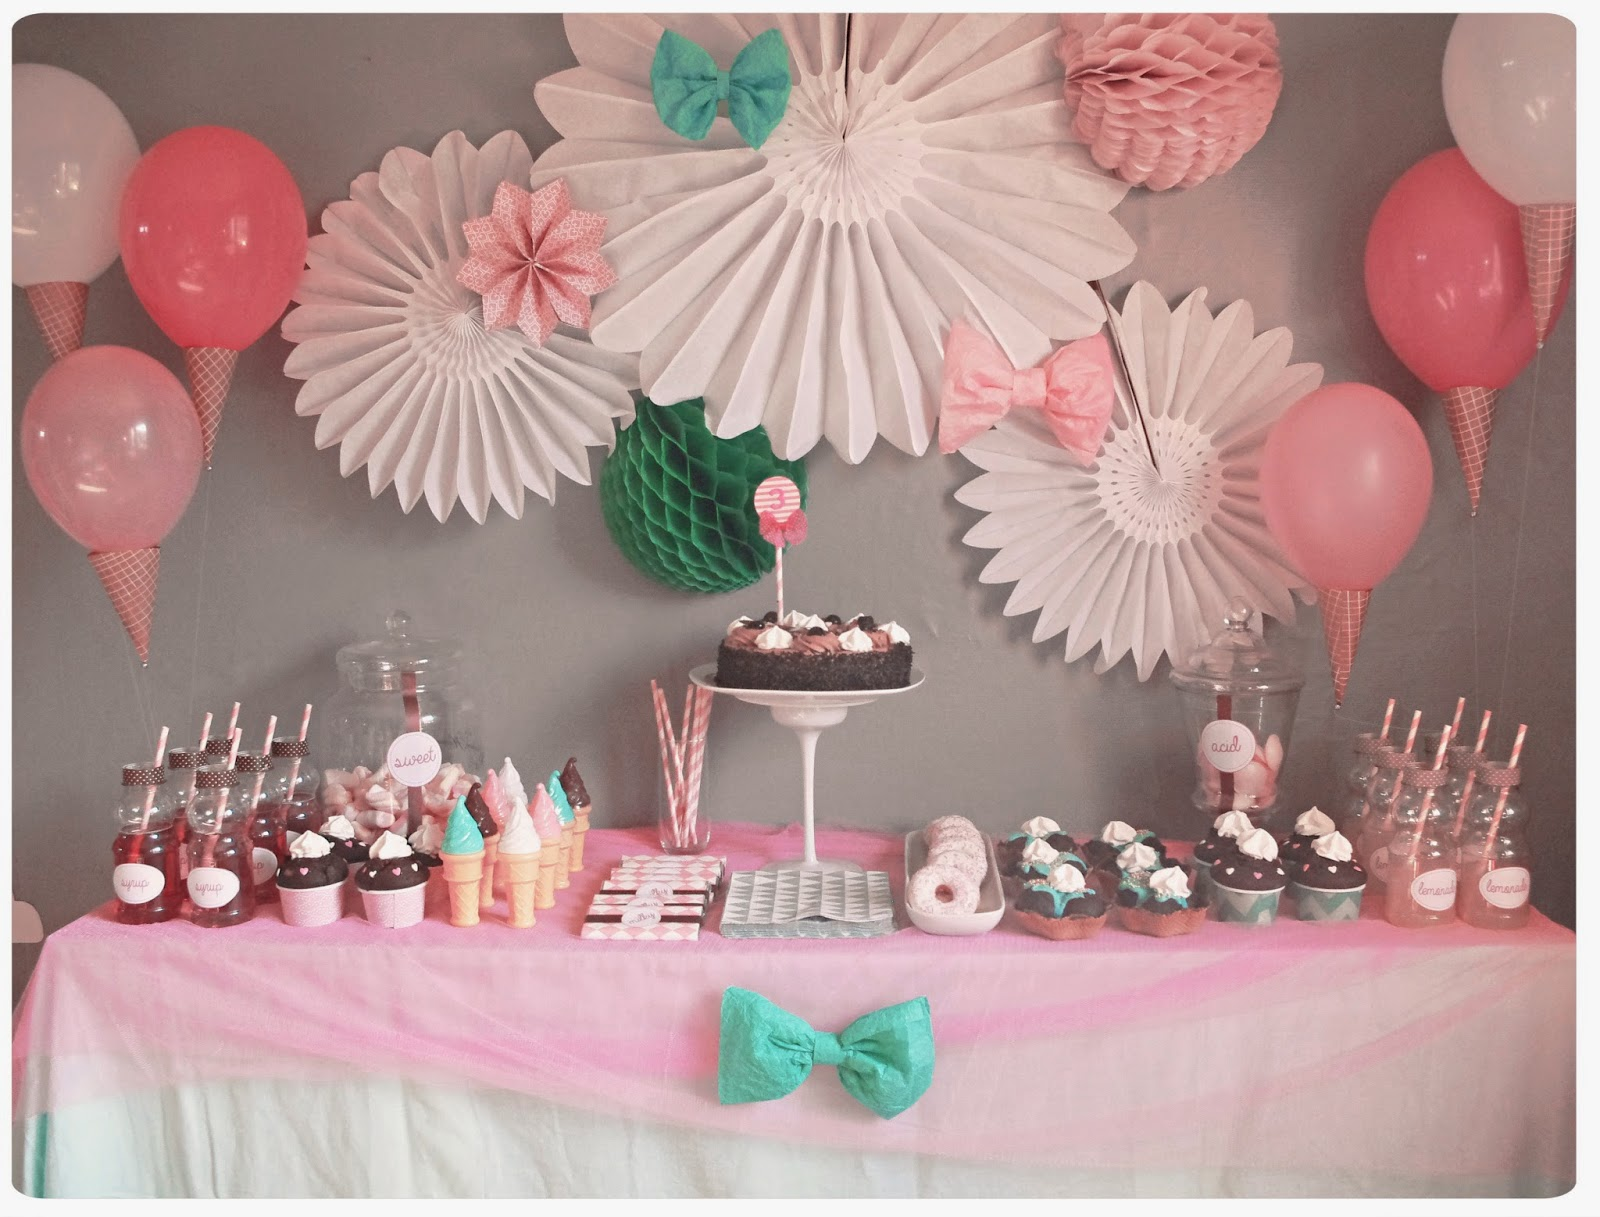 Baby shower fille des id es de buffets de princesses - Idee deco de table pour bapteme fille ...